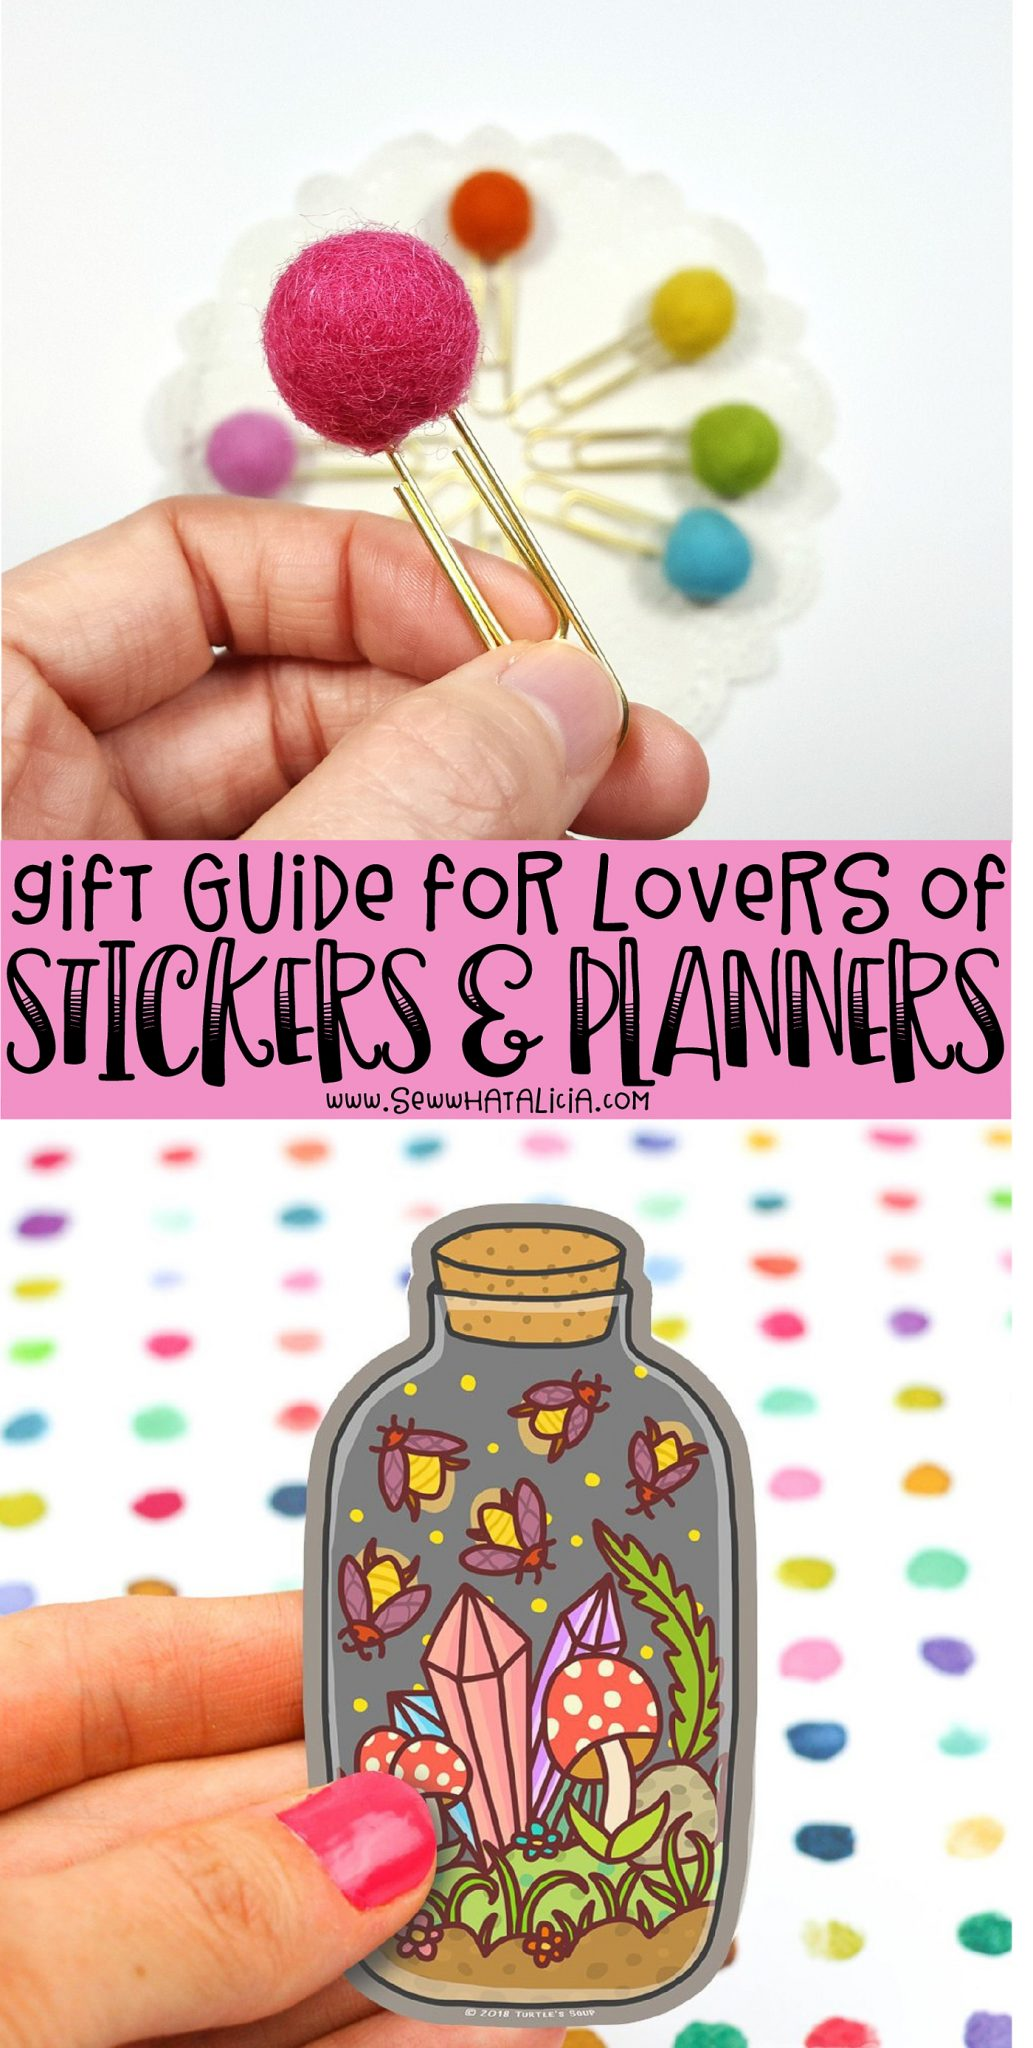 text overlay reading gift guide for lovers of stickers and planners, hand holding sticker, hand holding paperclip with felt ball on top